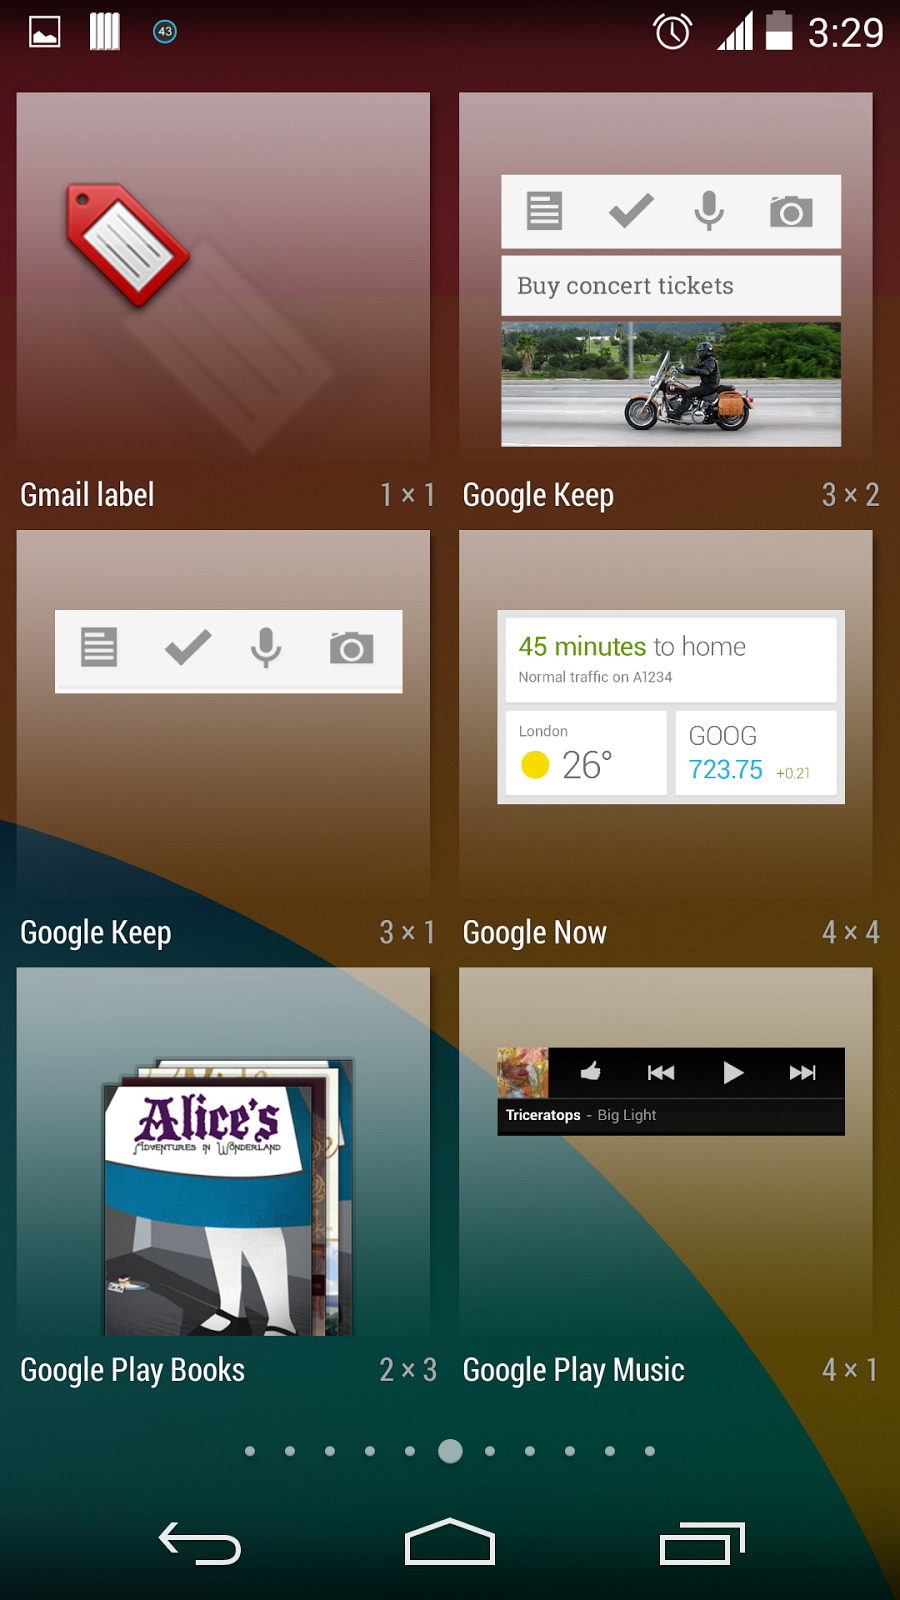 Google+LG+Nexus+5+Android+KitKat+Review+Handson+Detailed+Benchmark++%252823%2529.png